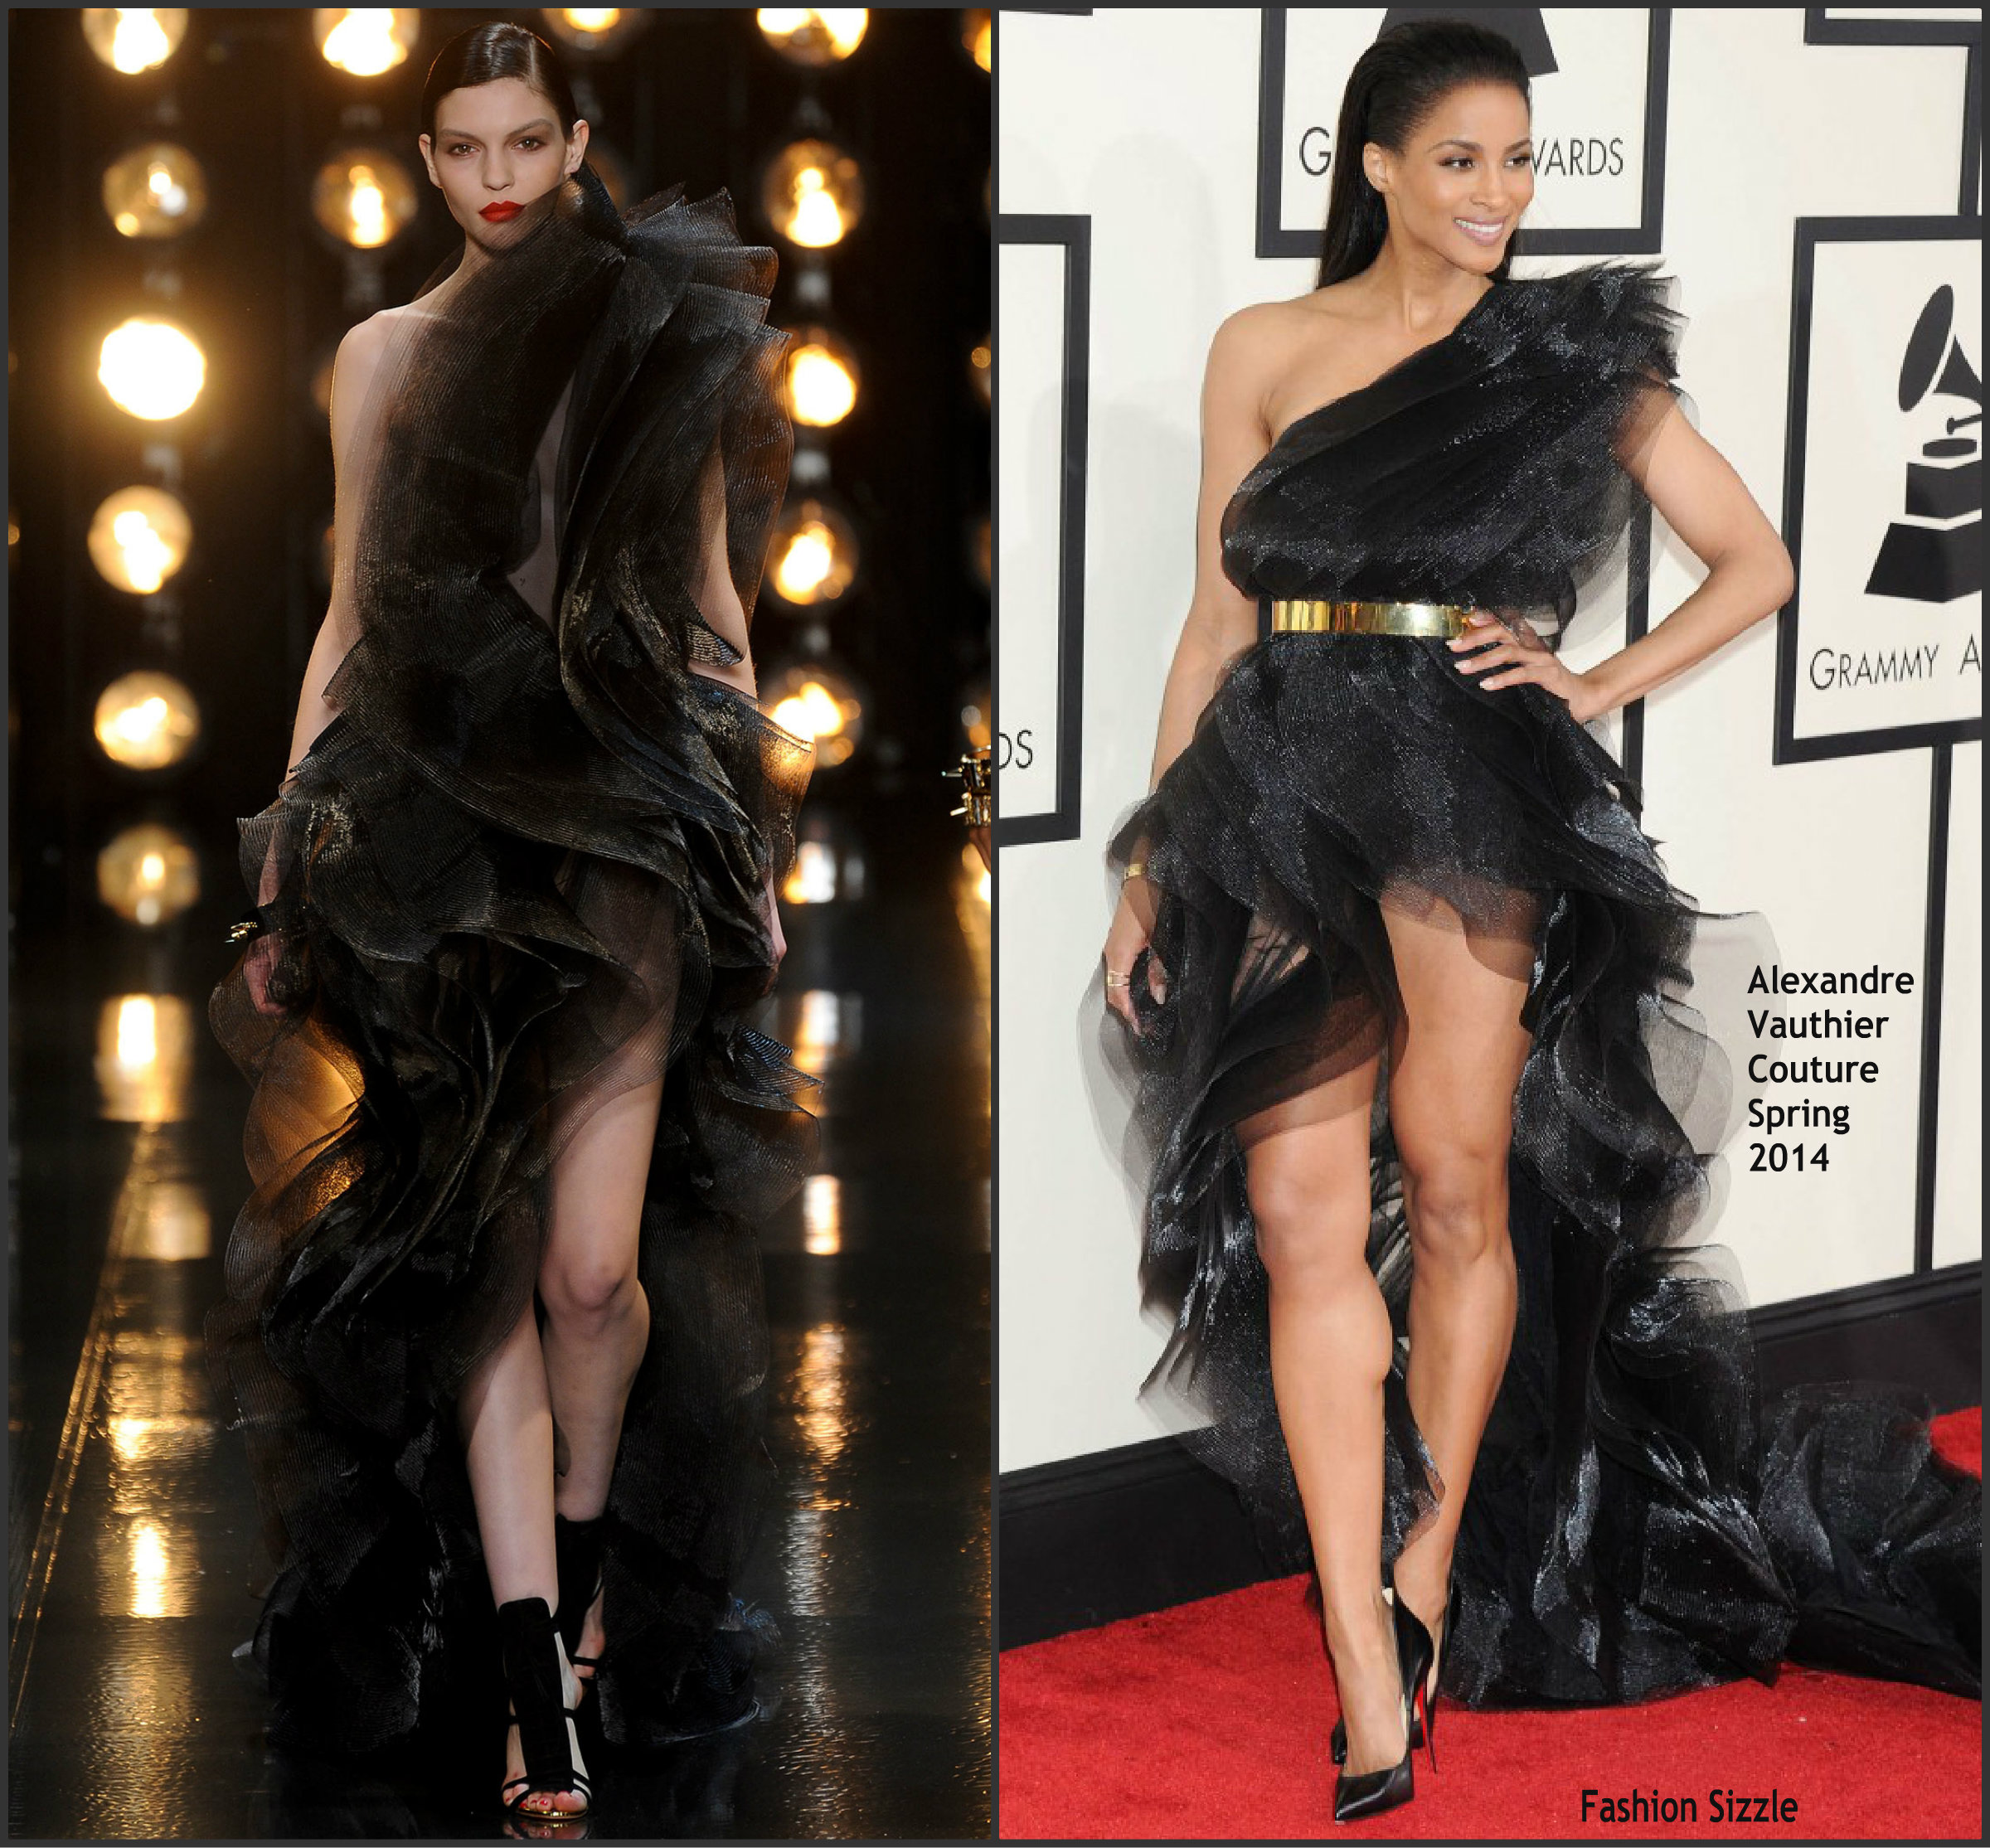 Ciara-In-Alexander-Vauthier-Couture-at-the-2015-Grammy-Awards